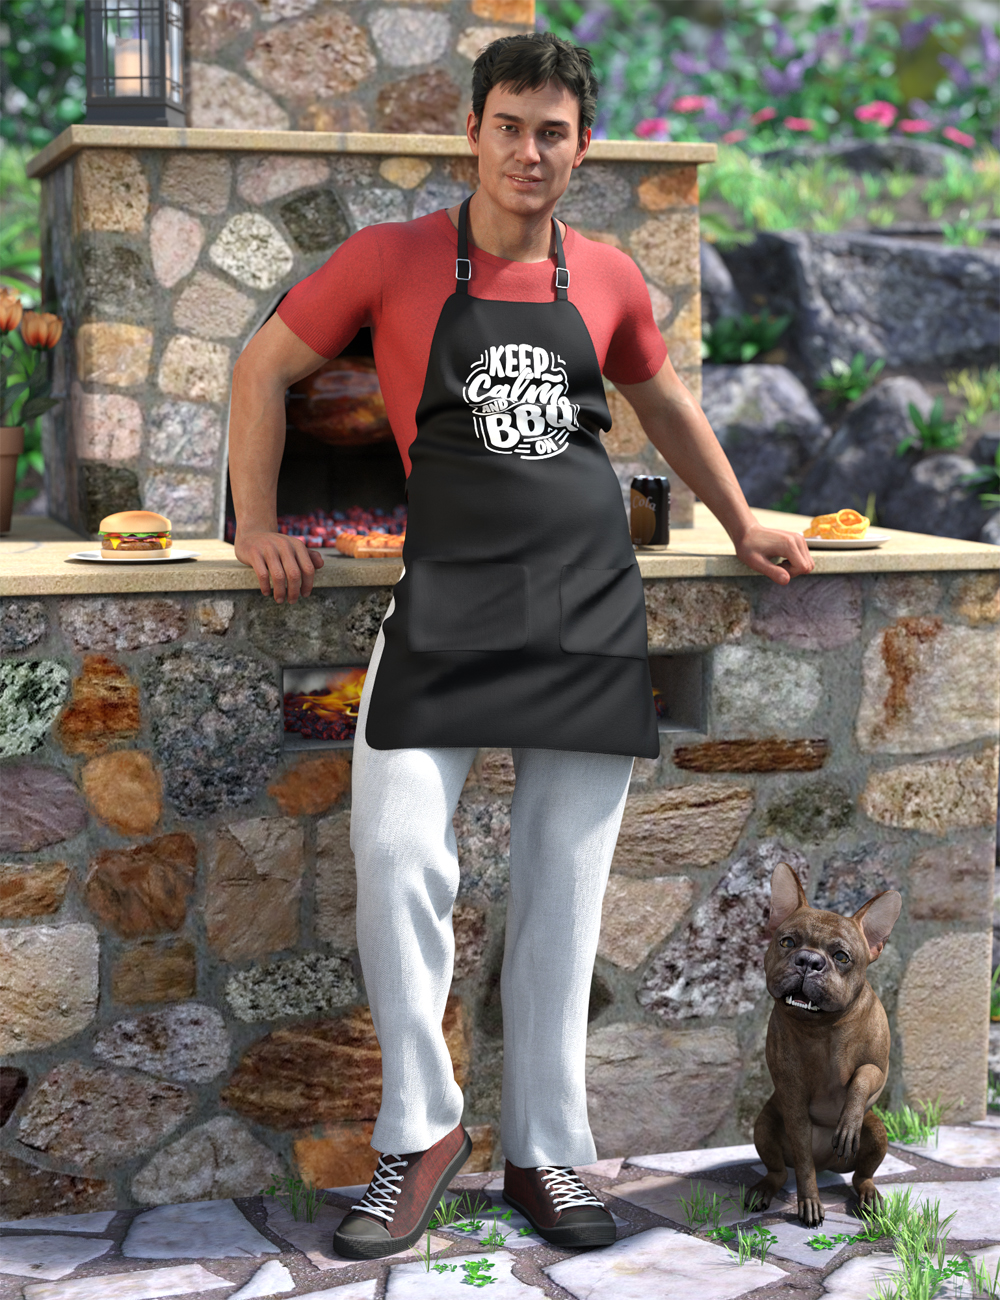 dForce Backyard BBQ Outfit for Genesis 8 Male(s) by: Moonscape GraphicsNikisatezSade, 3D Models by Daz 3D